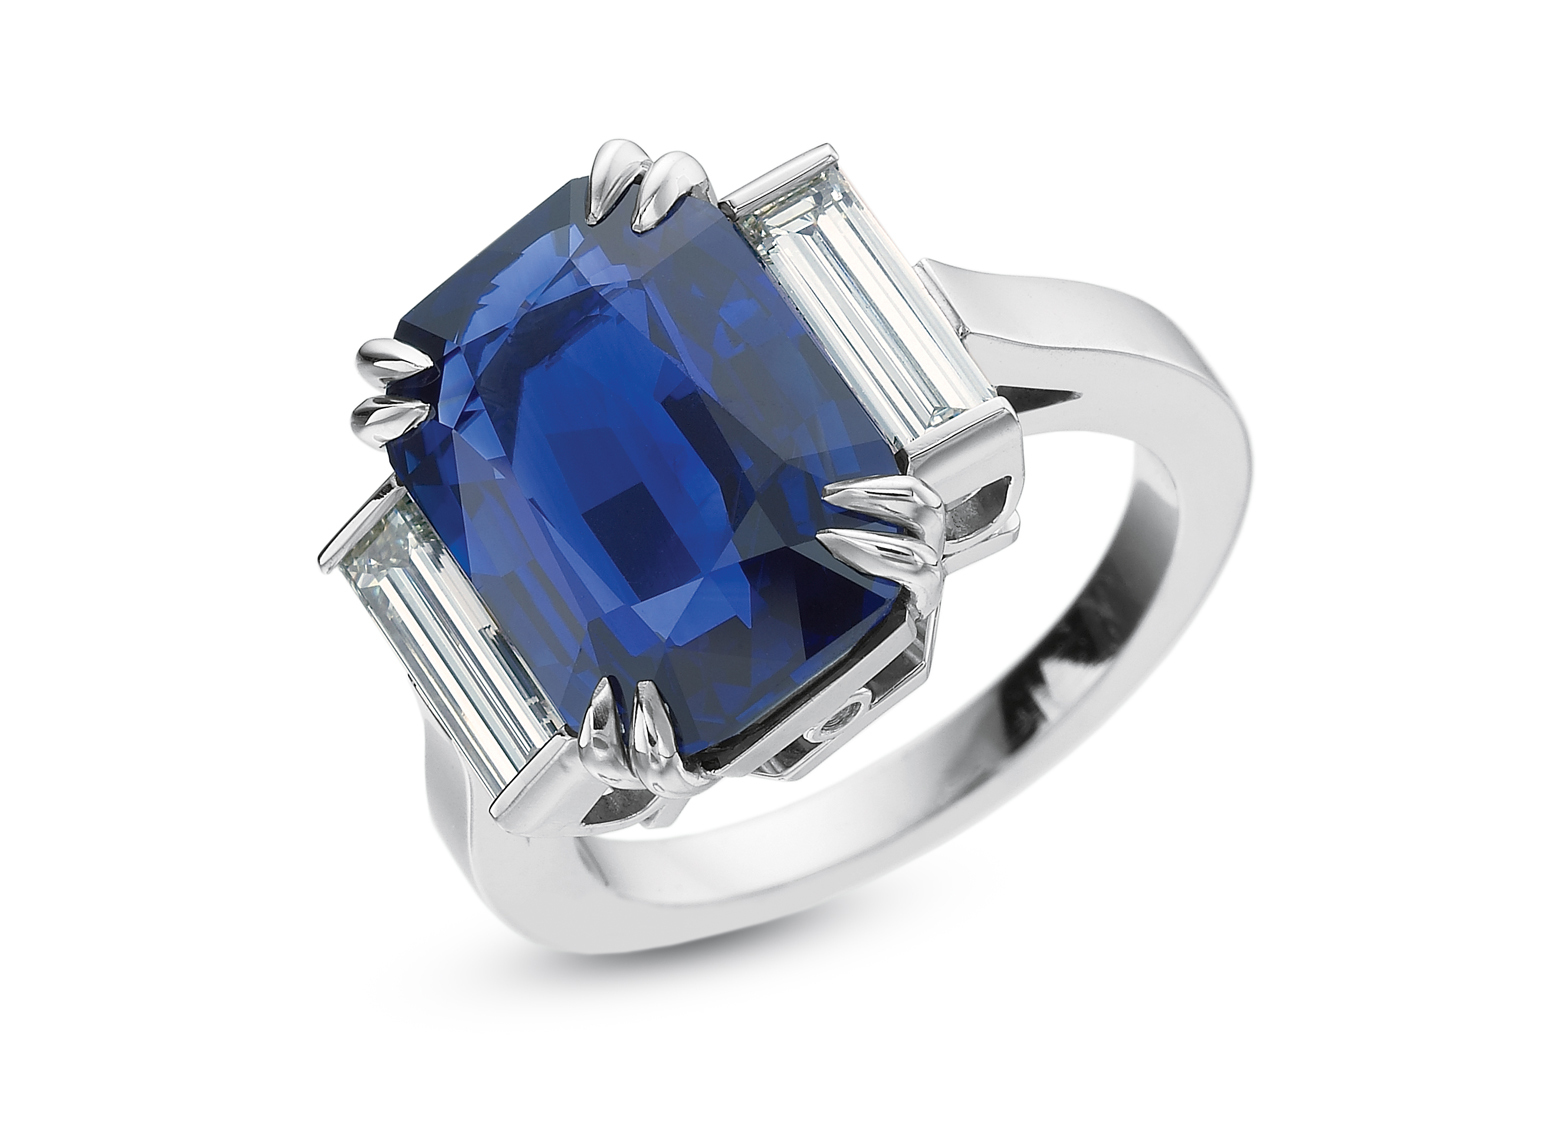 Emerald cut sapphire with baguette diamond side stones platinum ring.